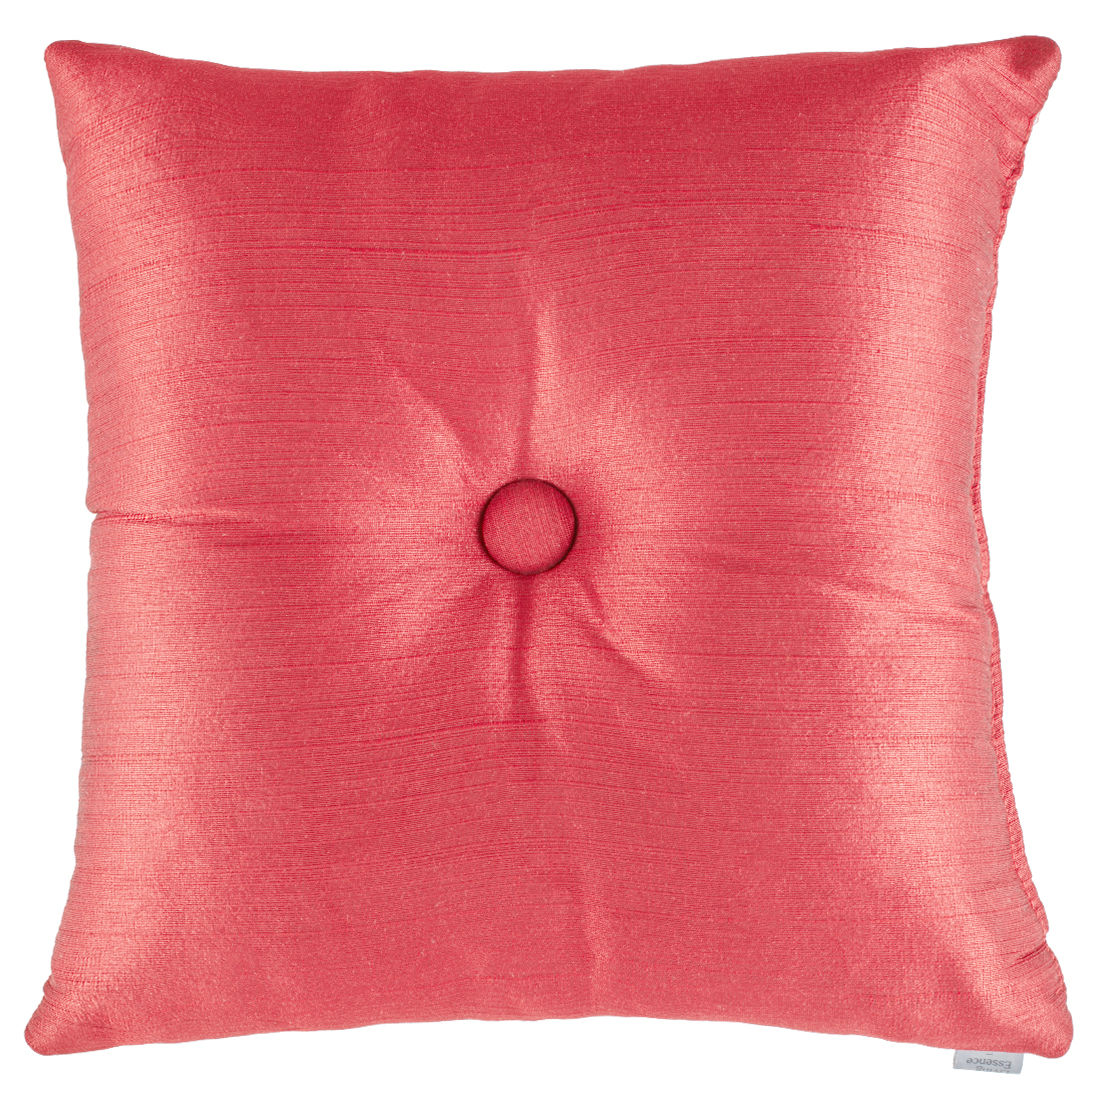 Fiesta Filled Polyester Filled Cushions in Maroon Colour by Living Essence